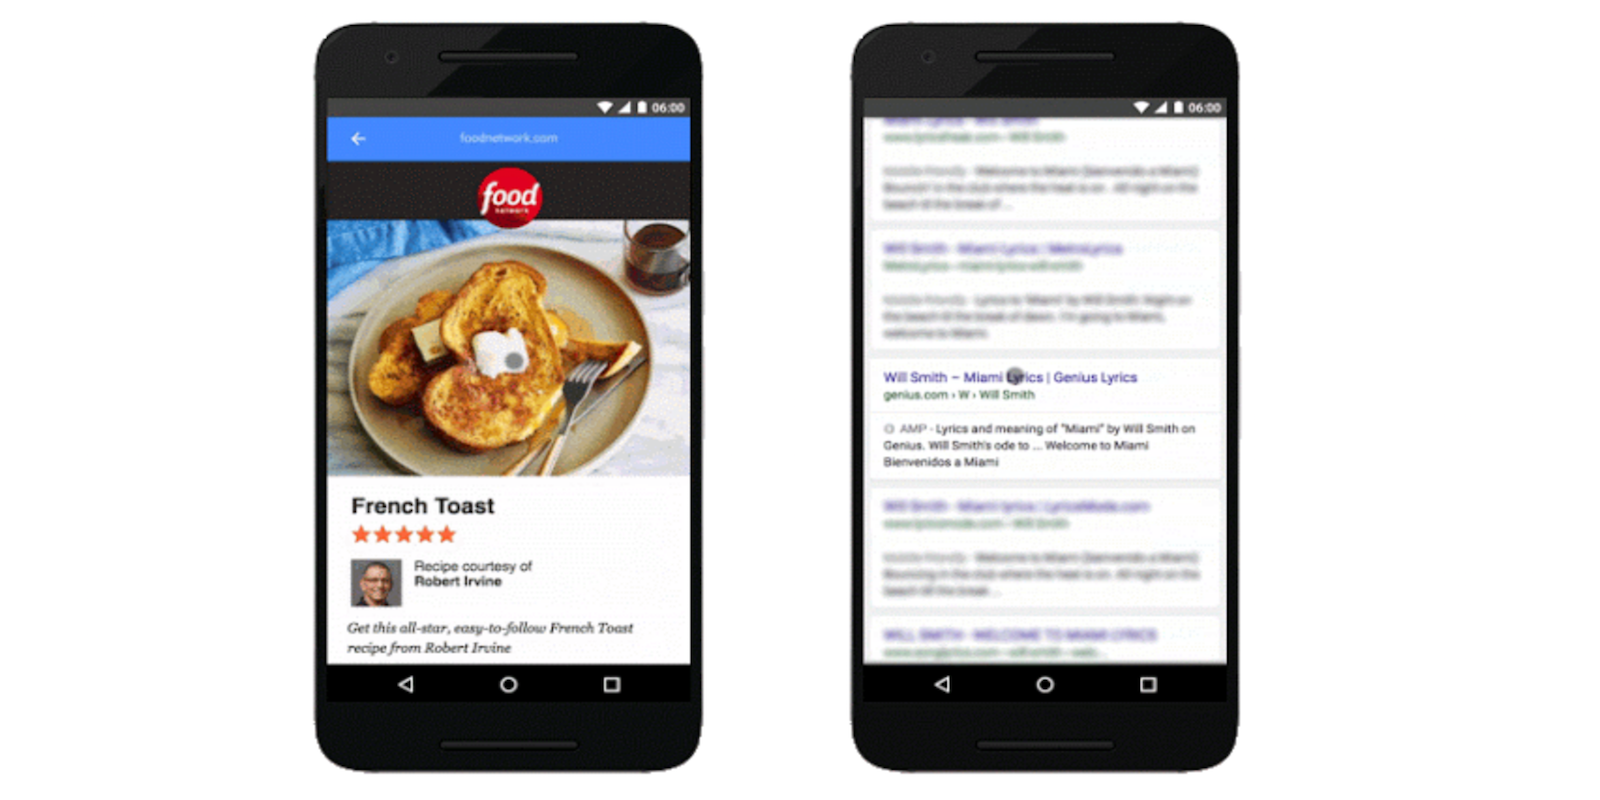 Google-AMP-article-search